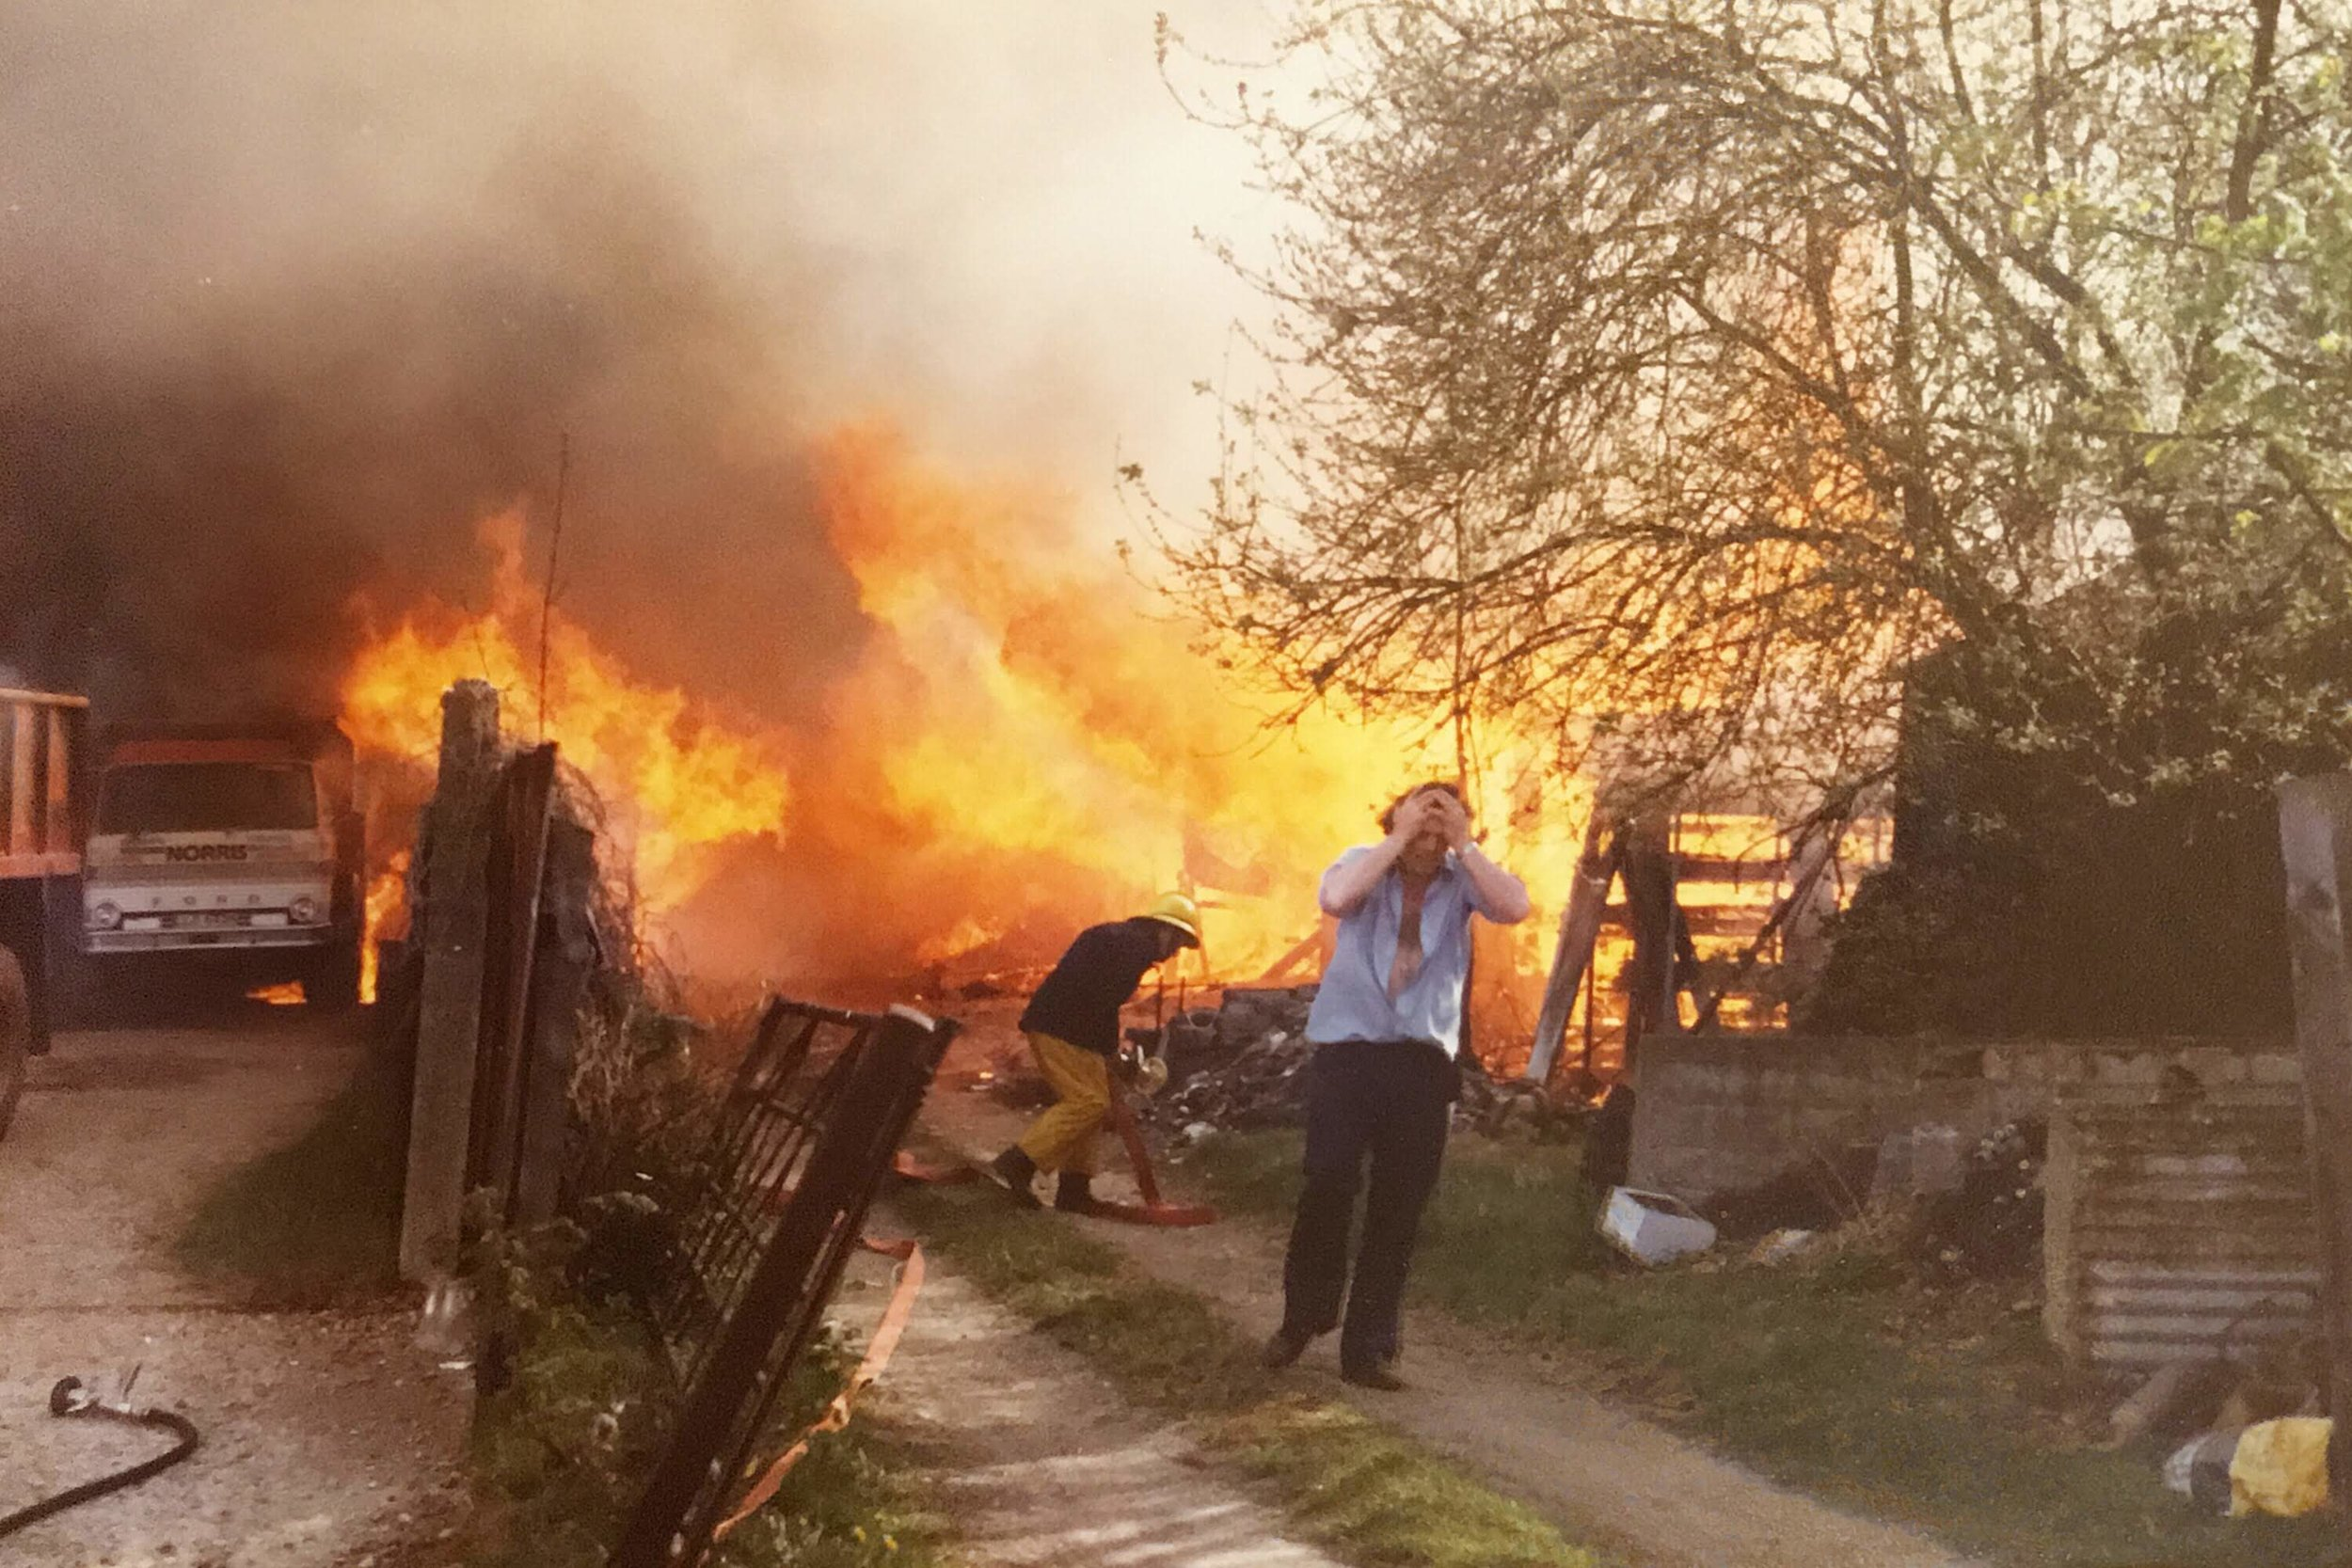 The huge fire burned everything in the yard including lorries and cars